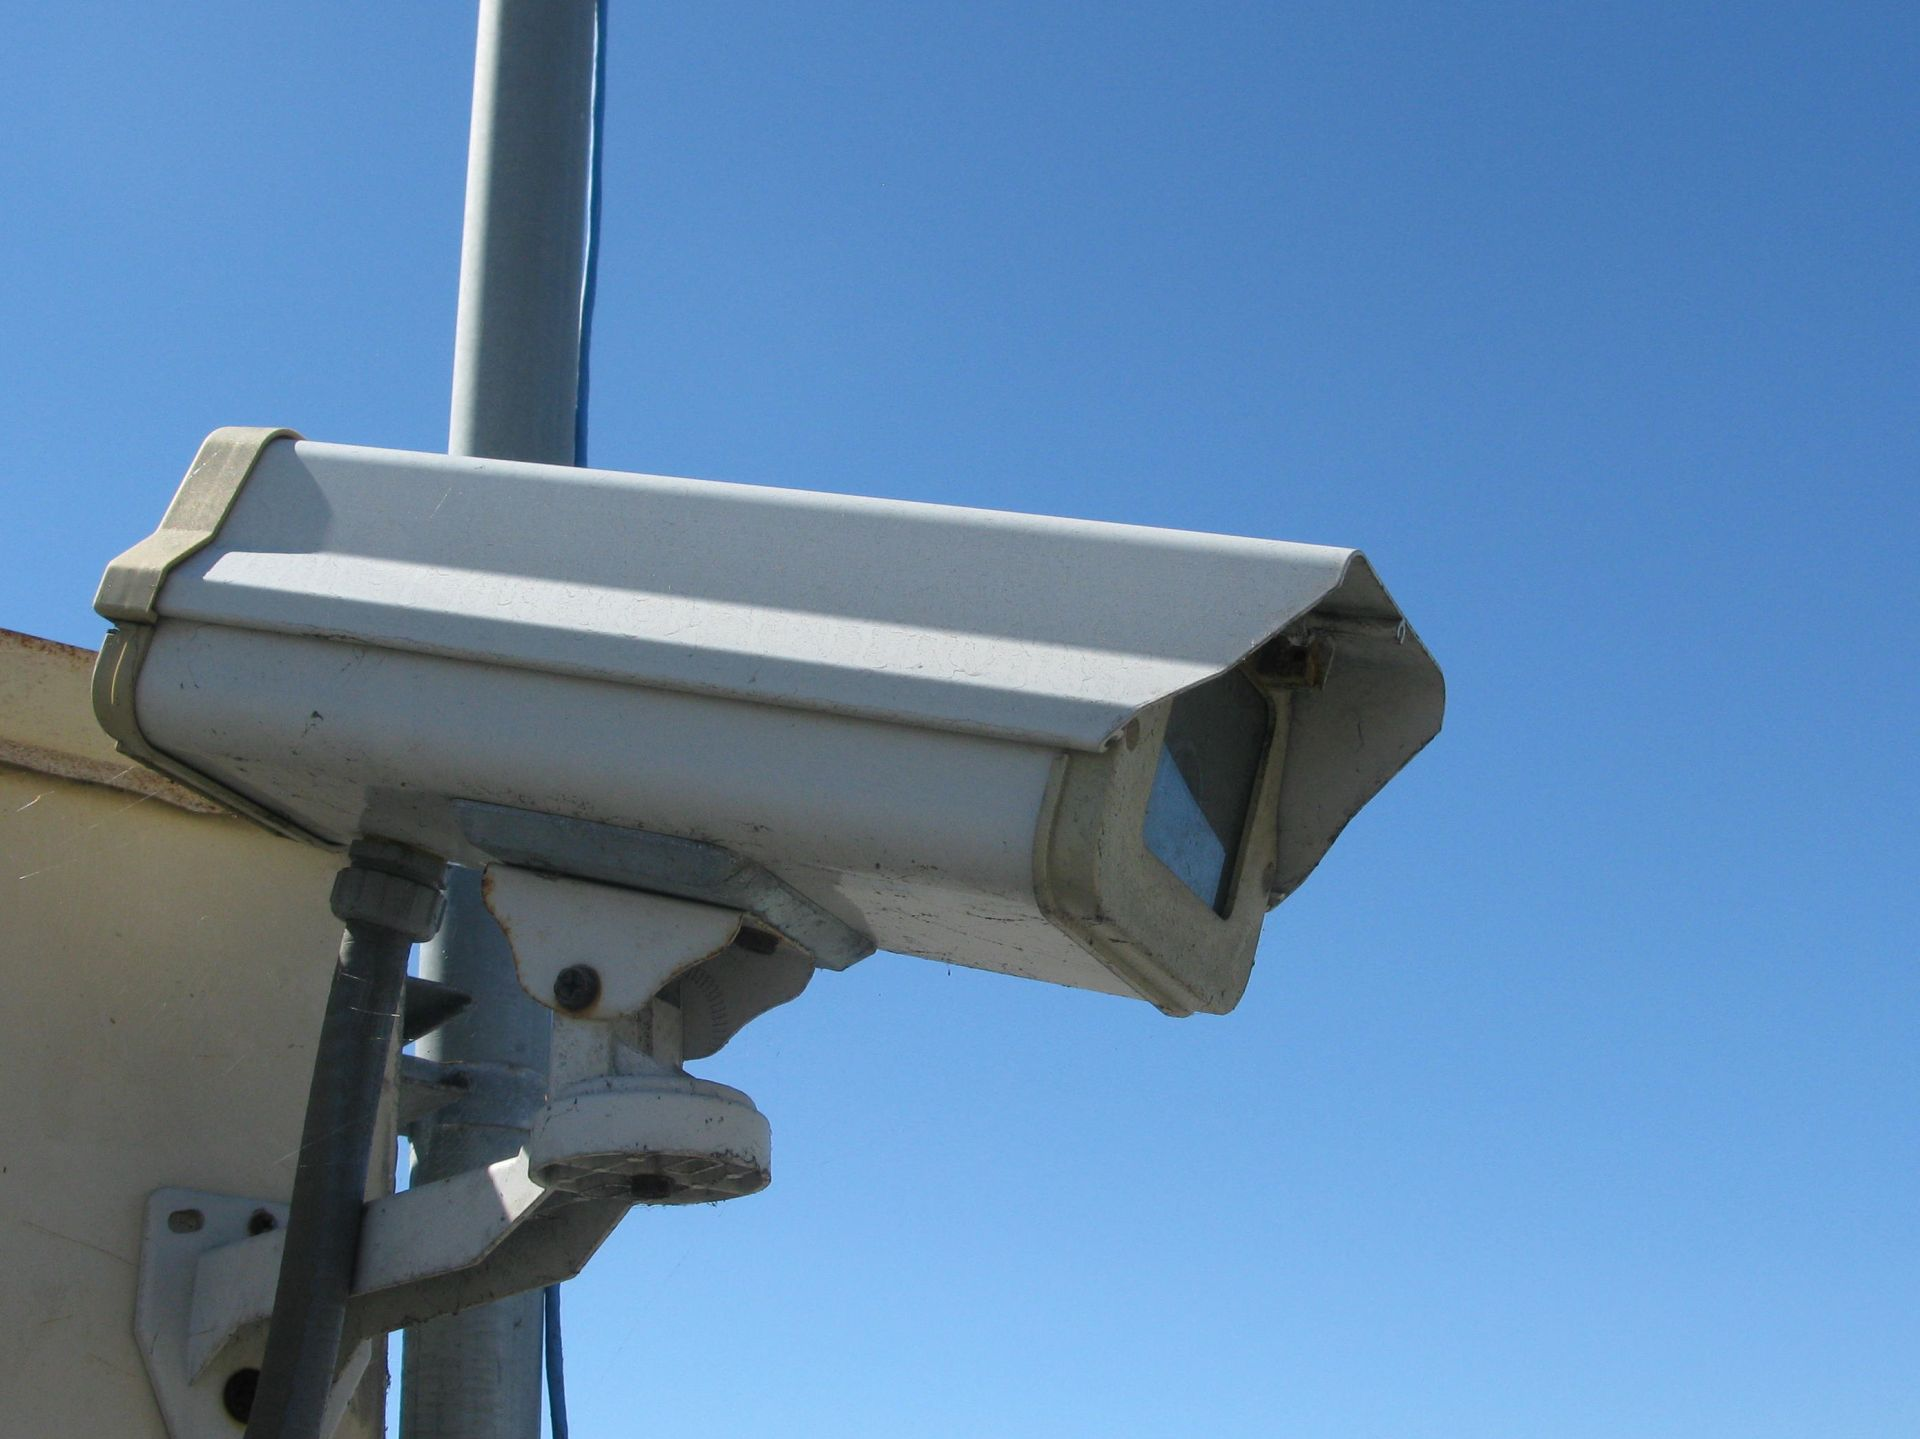 File:Surveilliance and security camera.jpg